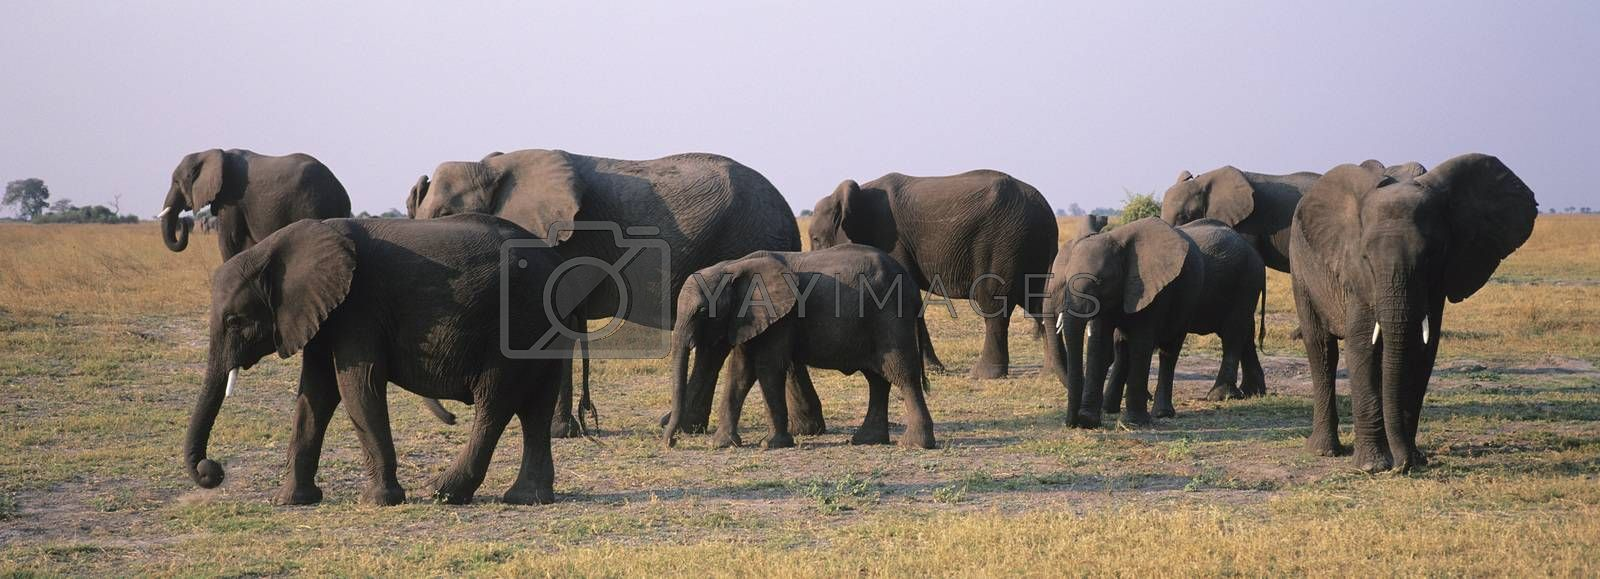 African Elephants (Loxodonta Africana) on savannah